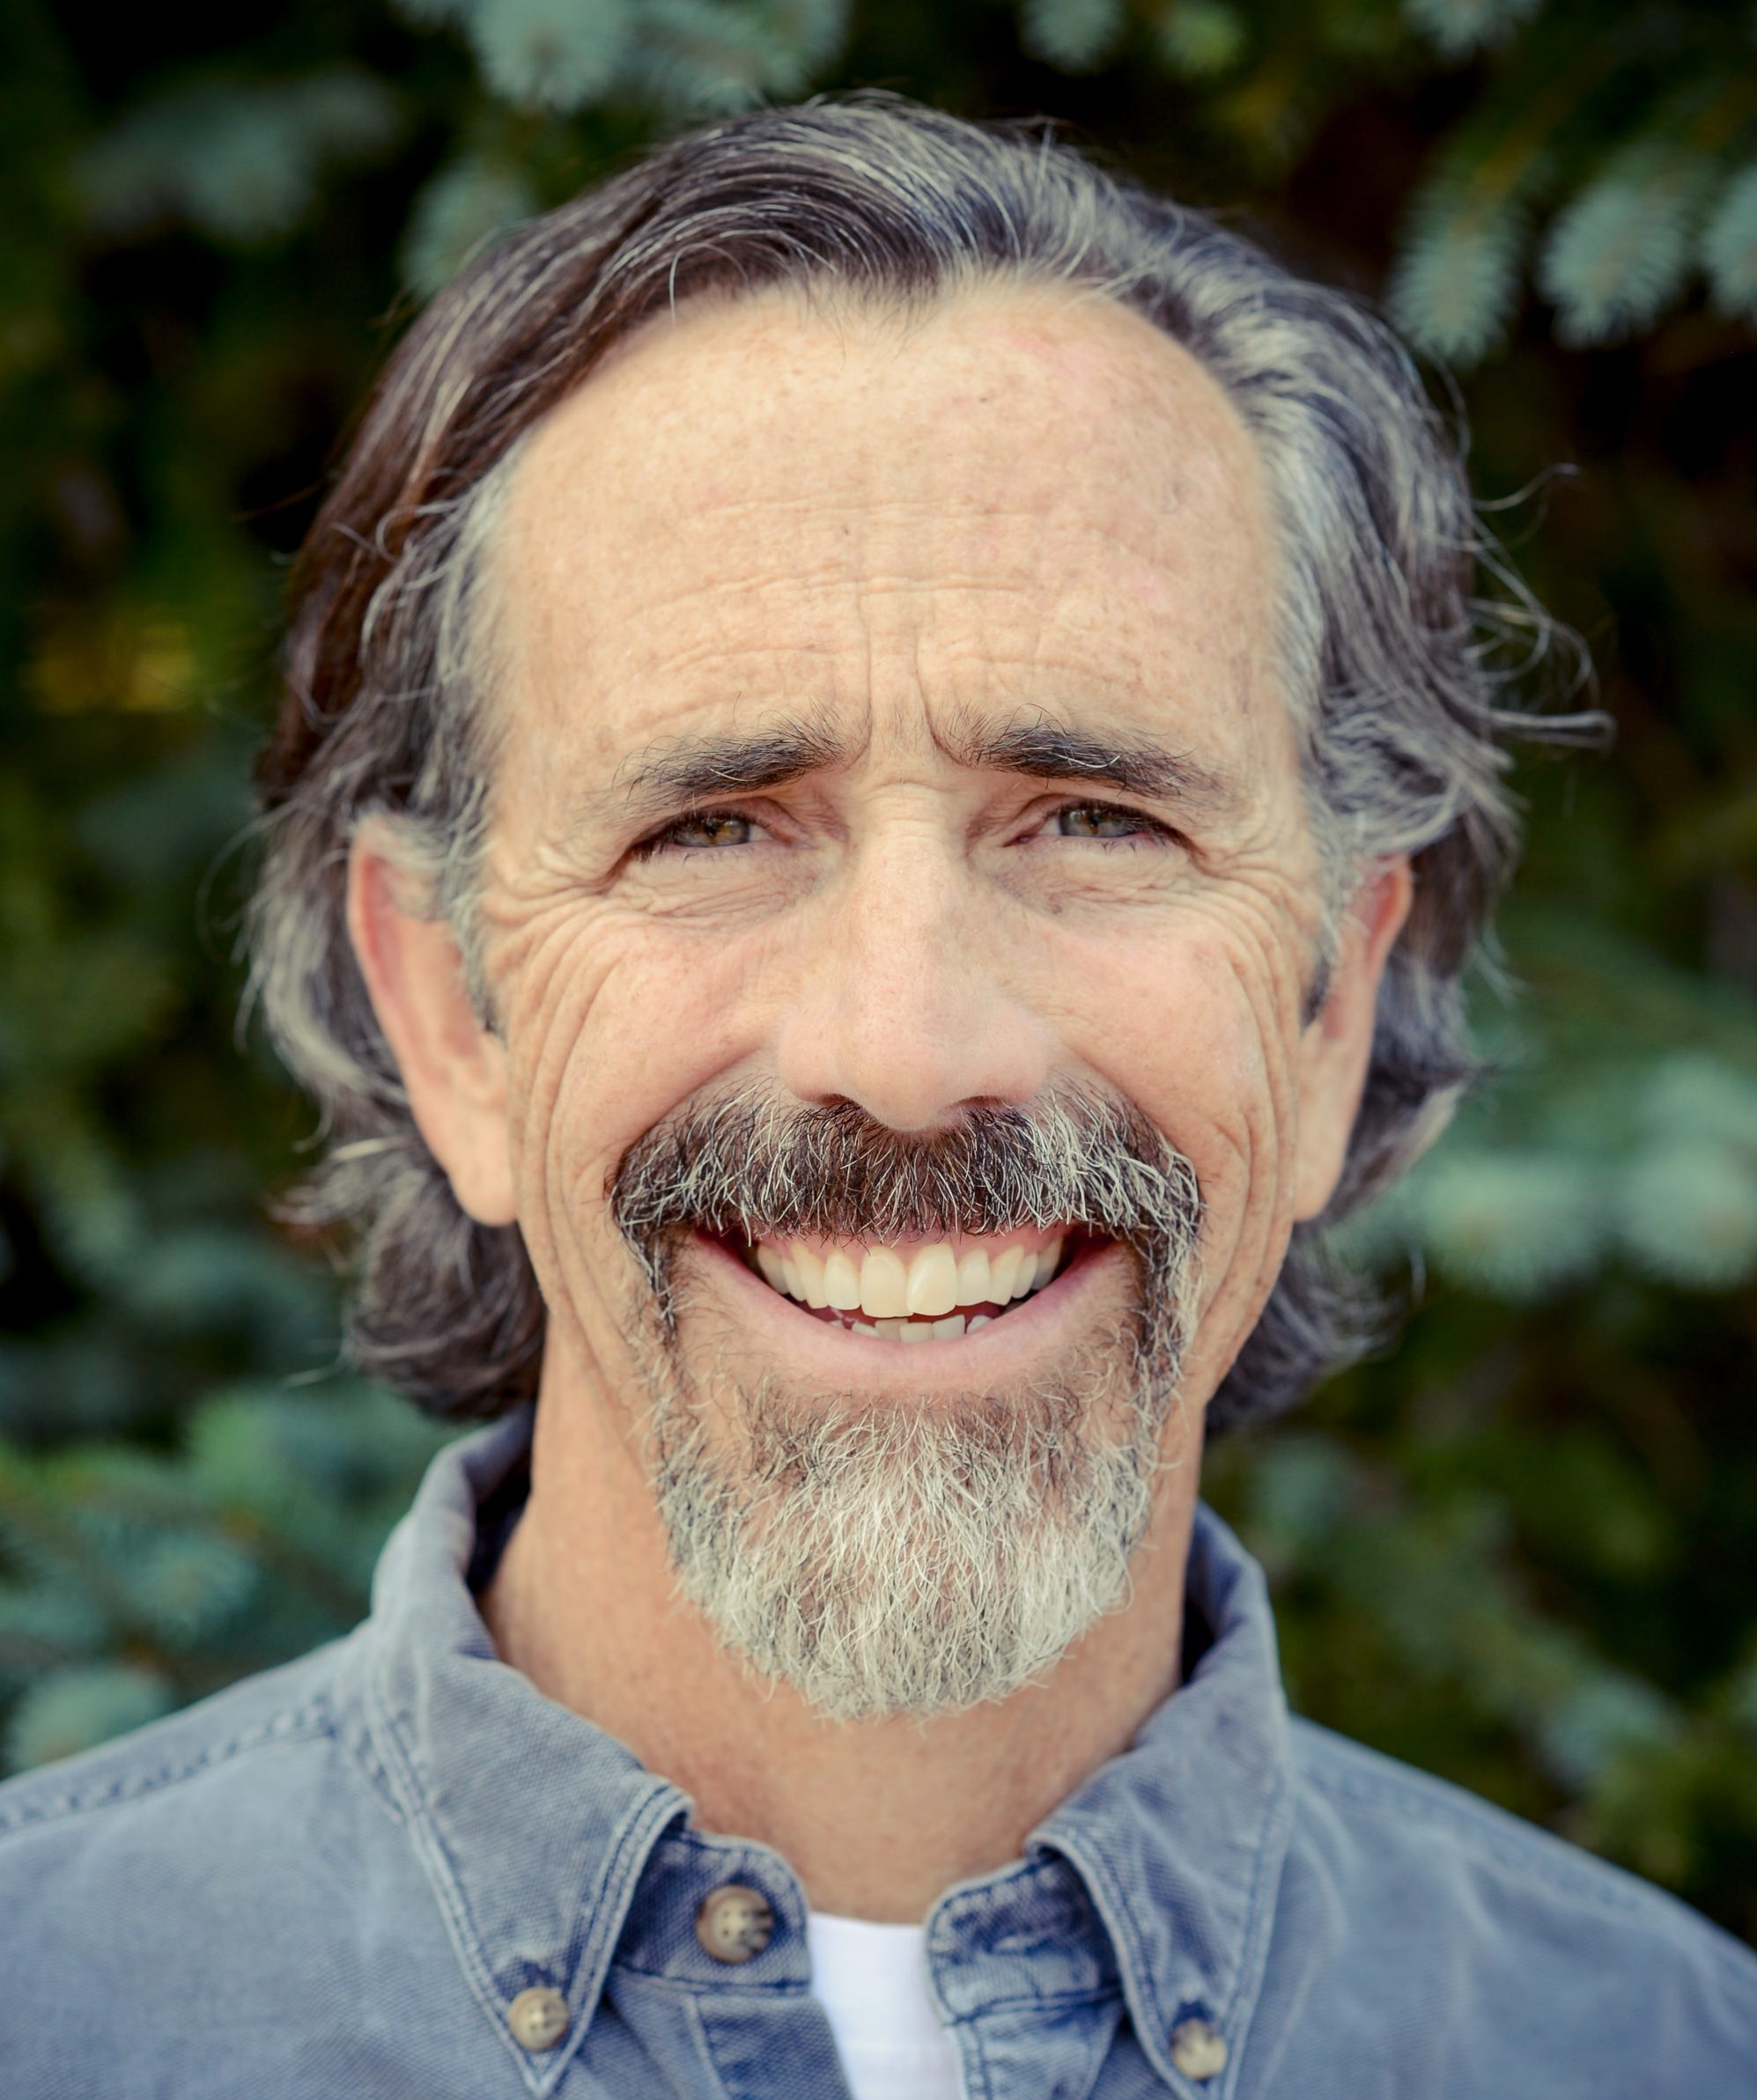 CNLP 355: John Eldredge on Living at an Unsustainable Pace, What Men and Women Most Long For, and How to Get Your Soul and Life Back